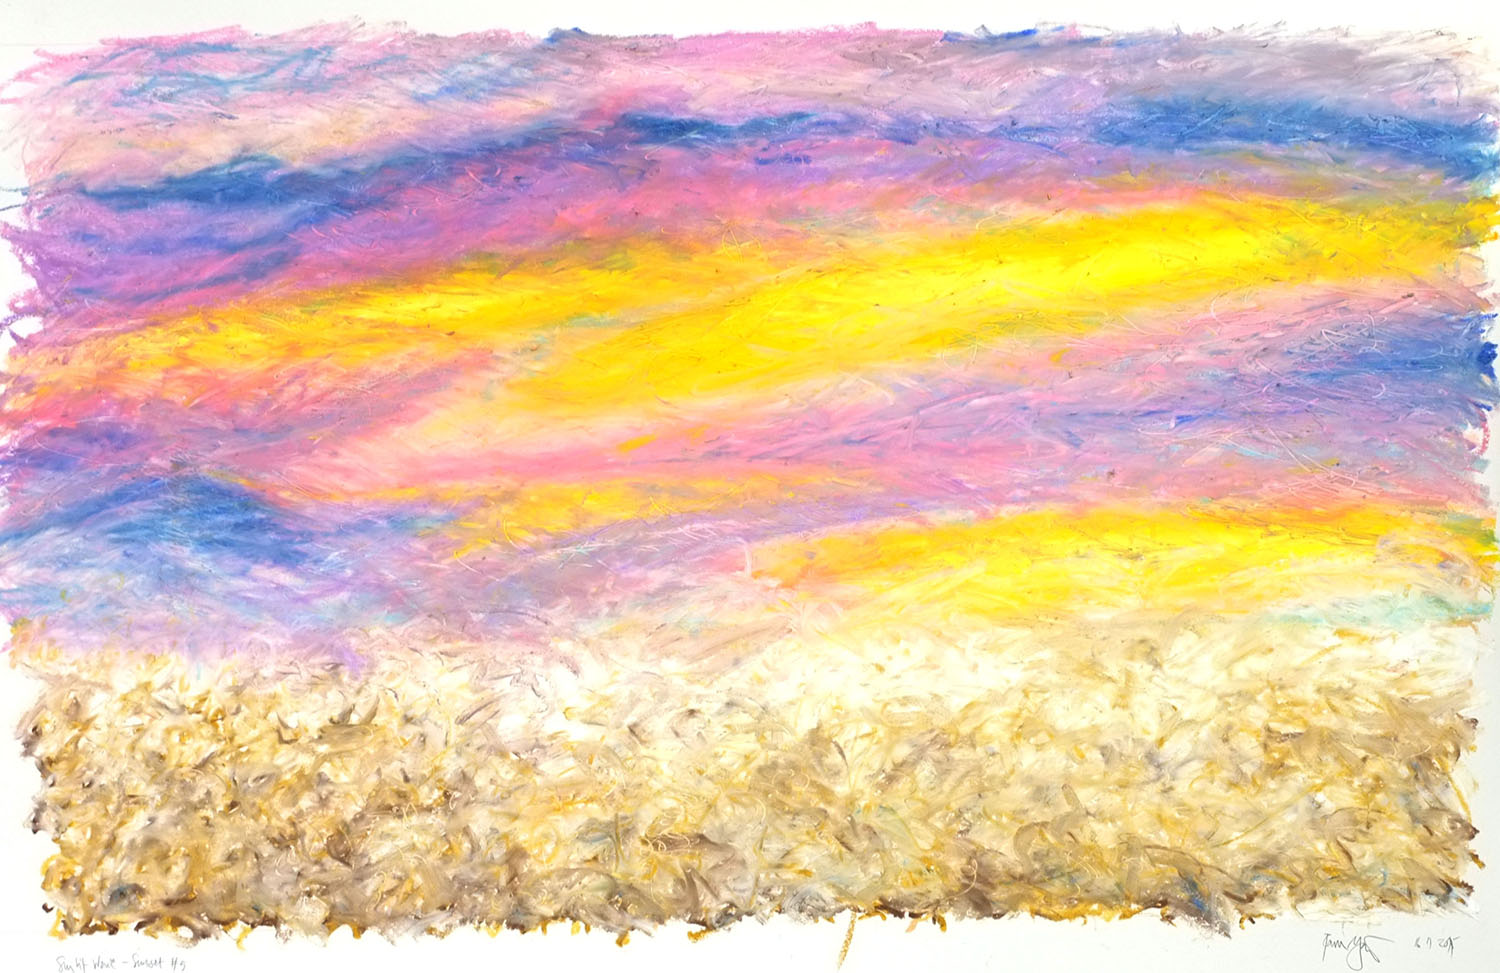 Sunset Wave 5 - oil pastels on 250 gram cartridge paper, 30 x 22 inches